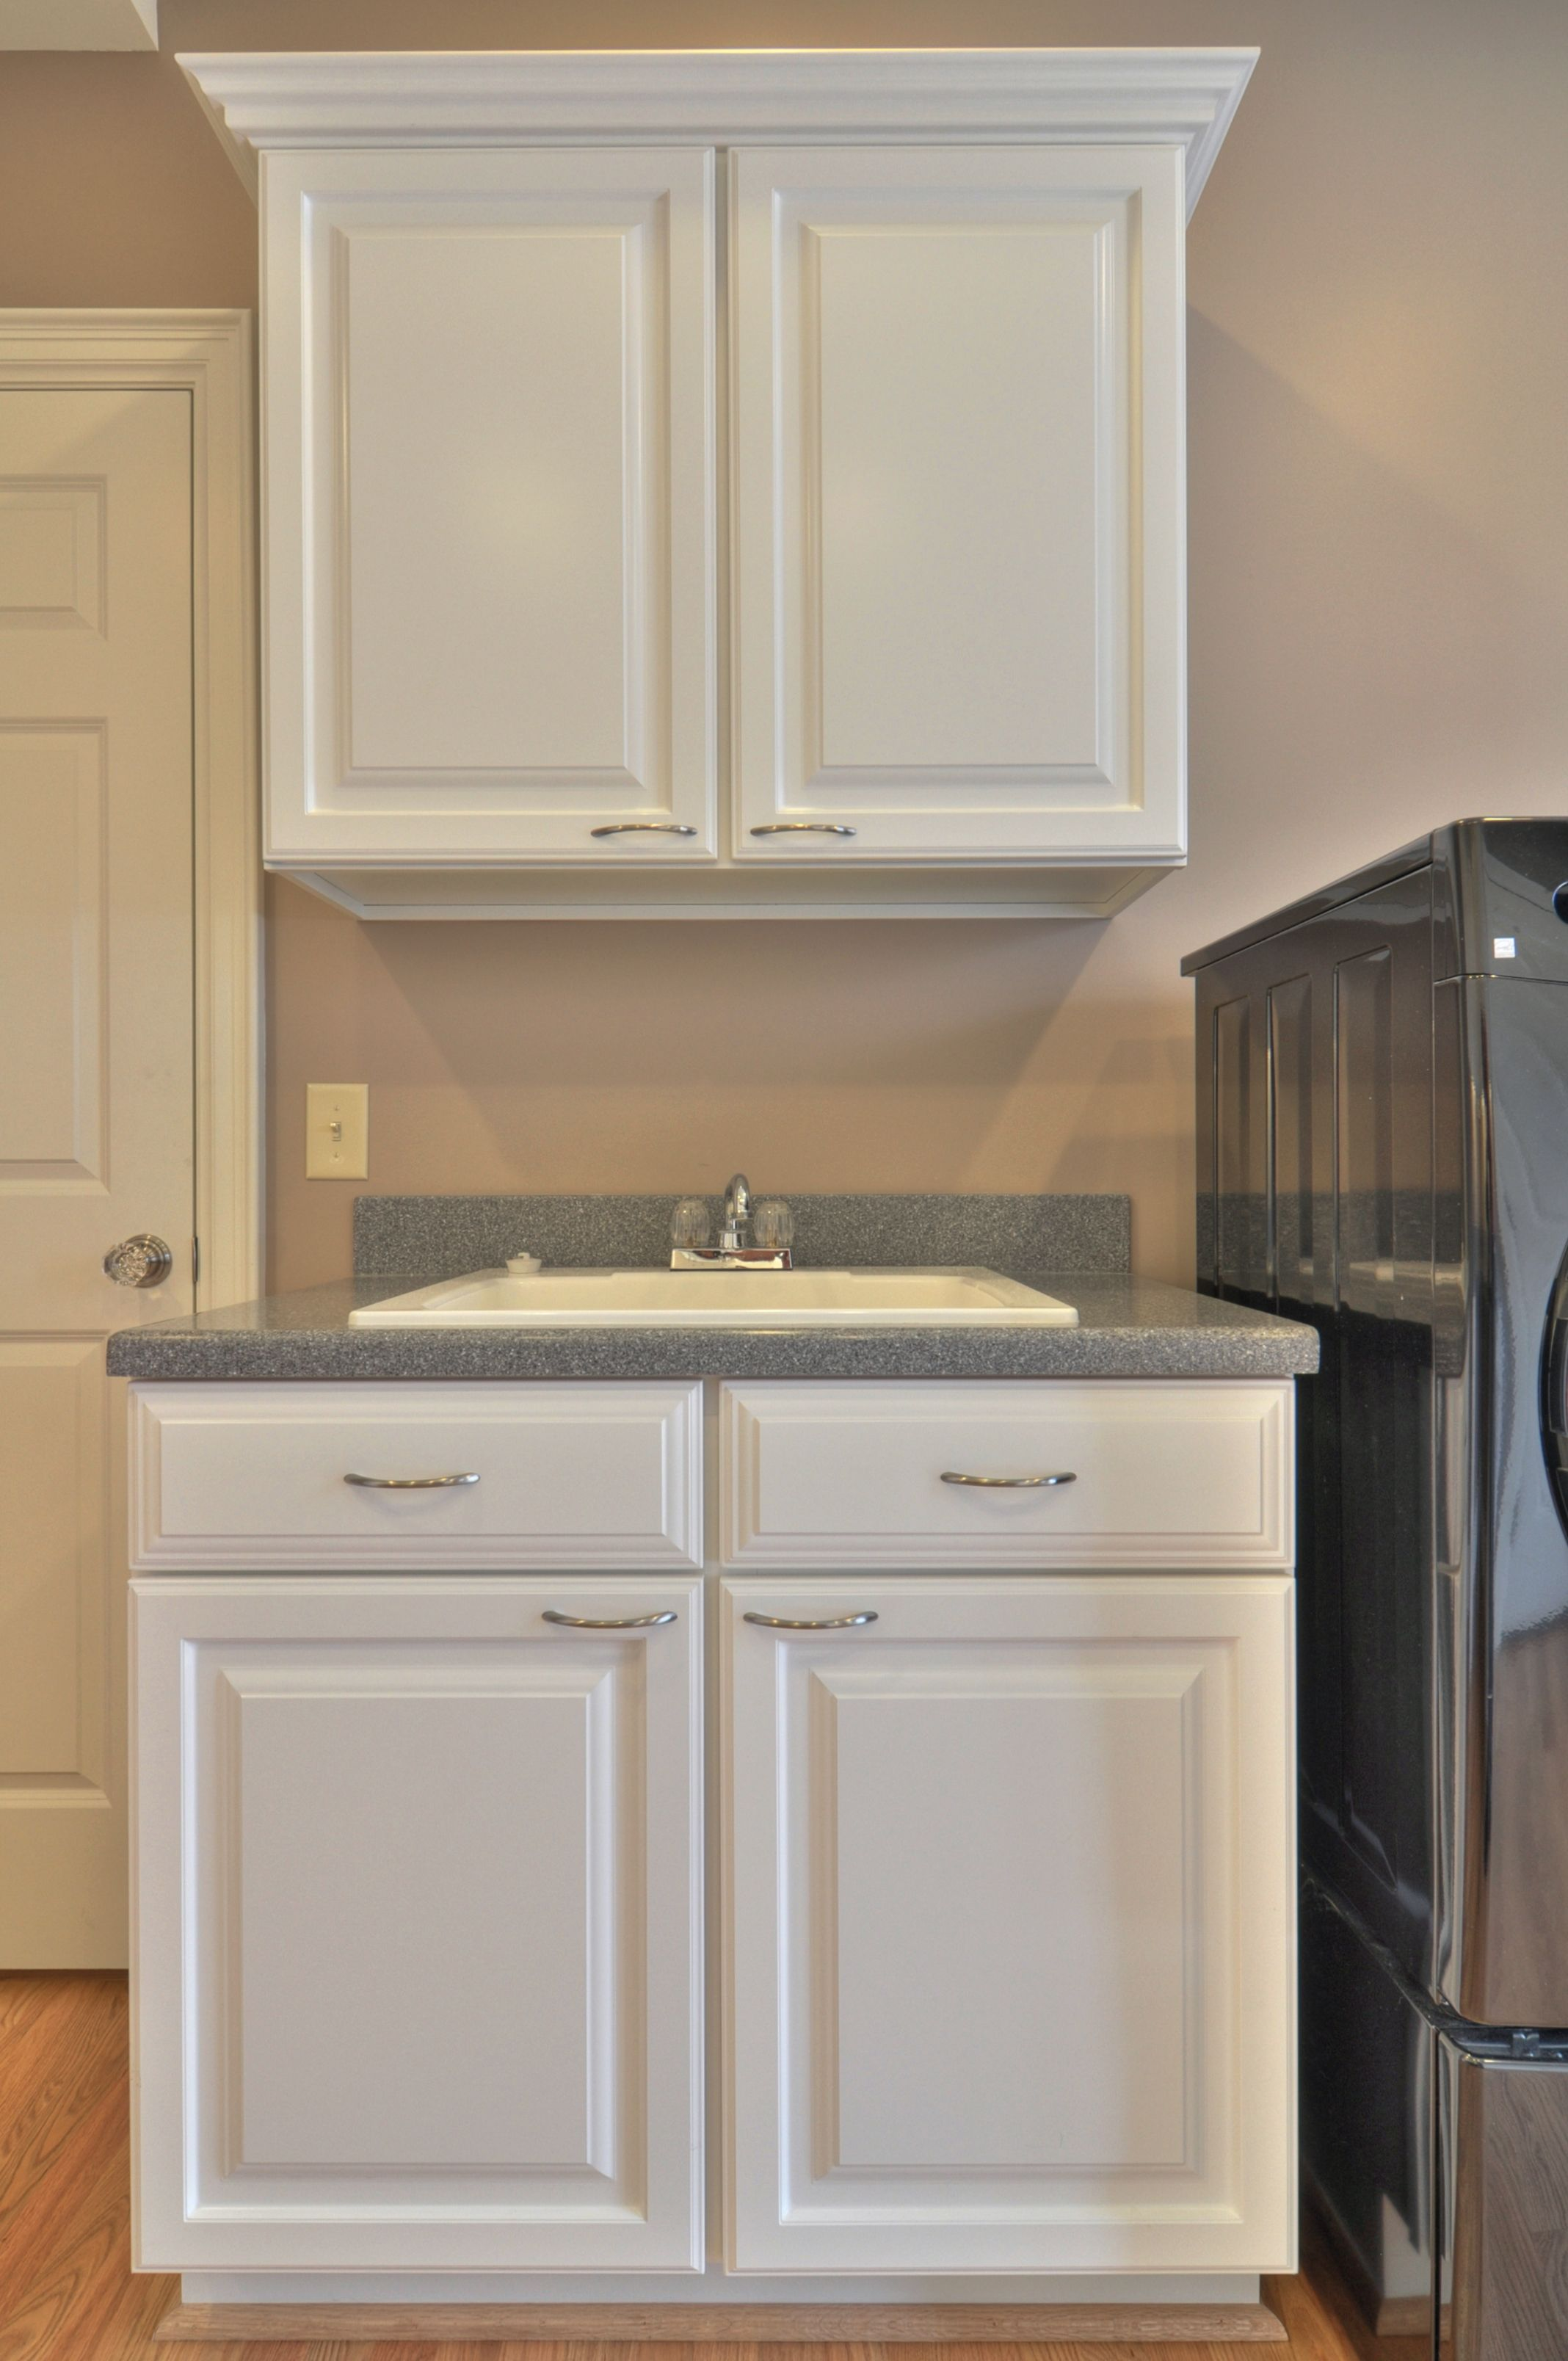 Built In Laundry Room Utility Sink. Thermal Foil Cabinets With Solid  Surface Countertops. Gives Extra Storage And Organization For The Laundry  Room.